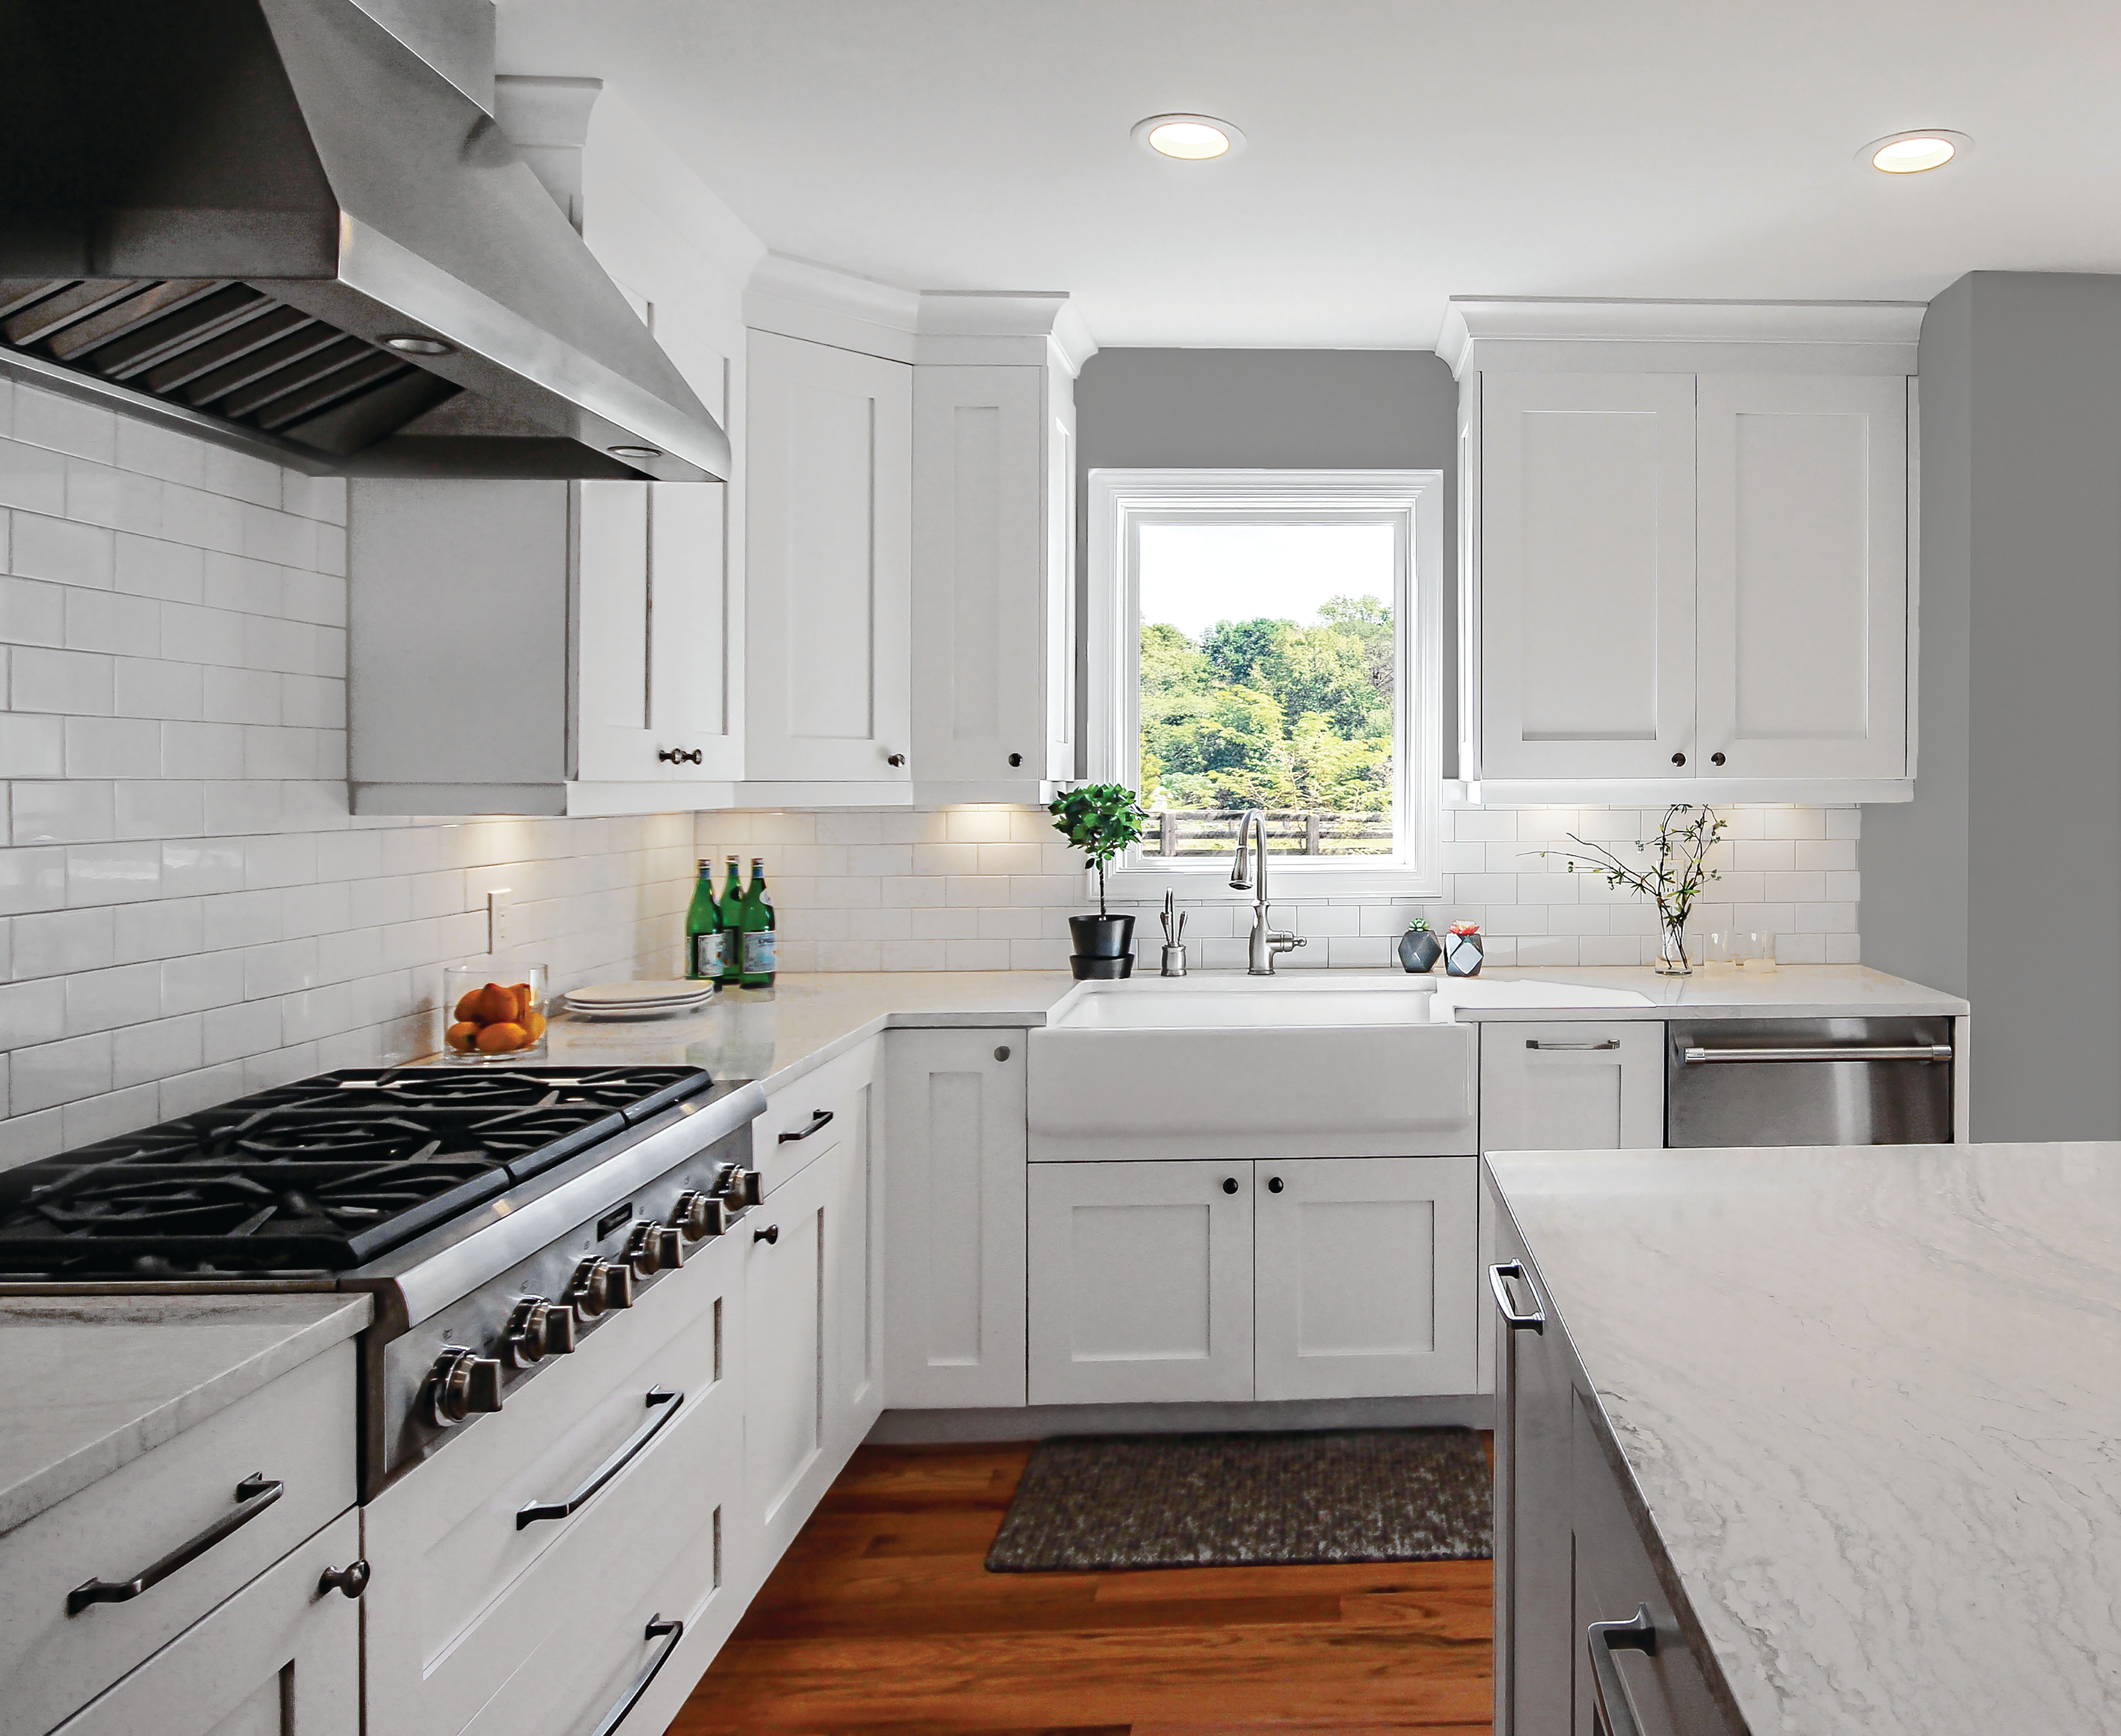 Kitchen Remodel Season Is Around The Corner Don T Forget To Plan Ahead For Your Windows If Yo White Modern Kitchen Home Insulation Home Improvement Companies